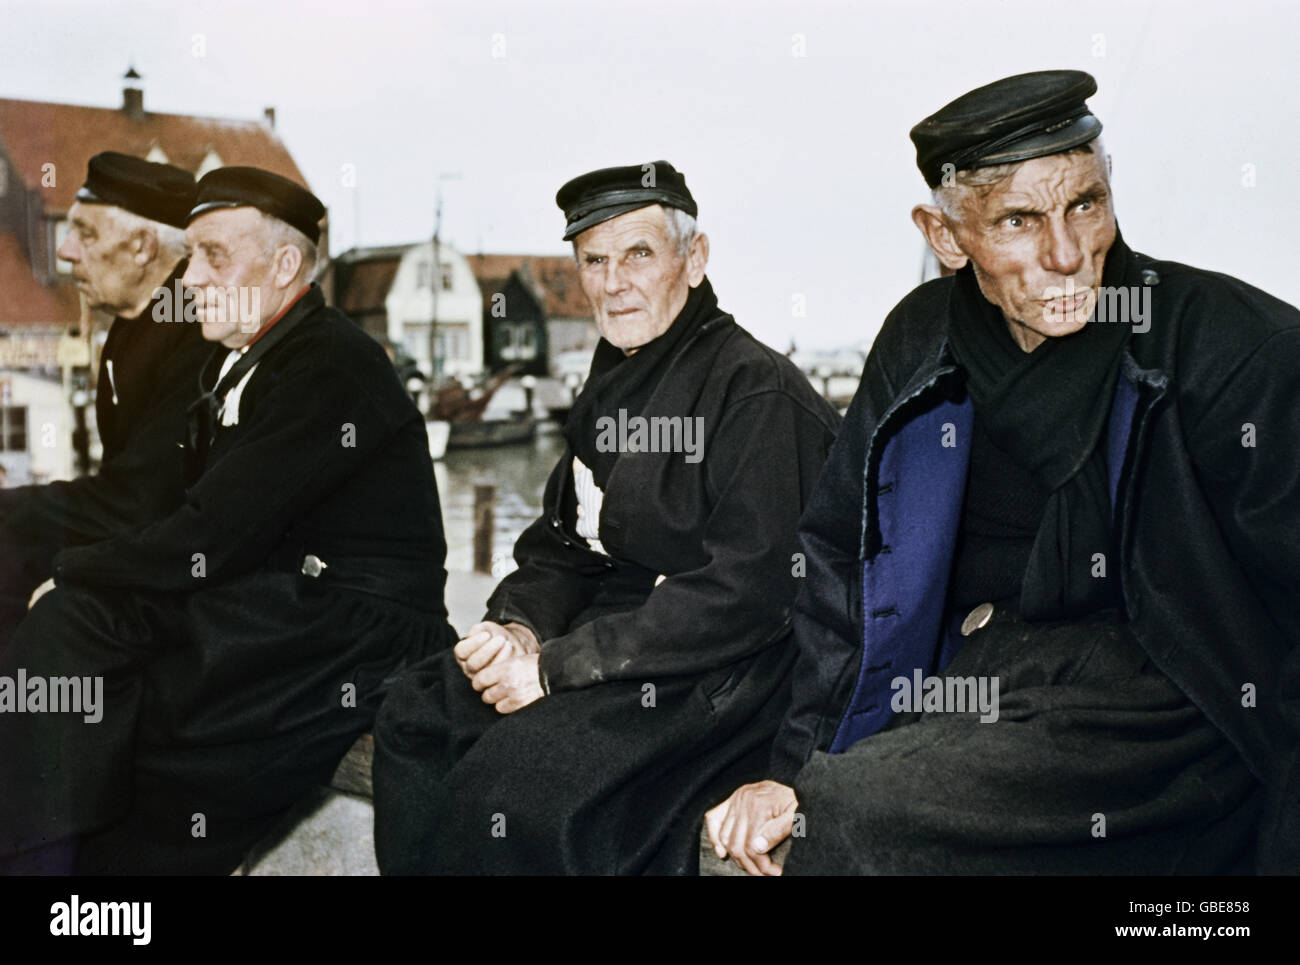 geography / travel, countries, Netherlands, Volendam, fishermen, 1950s, Additional-Rights-Clearences-NA - Stock Image